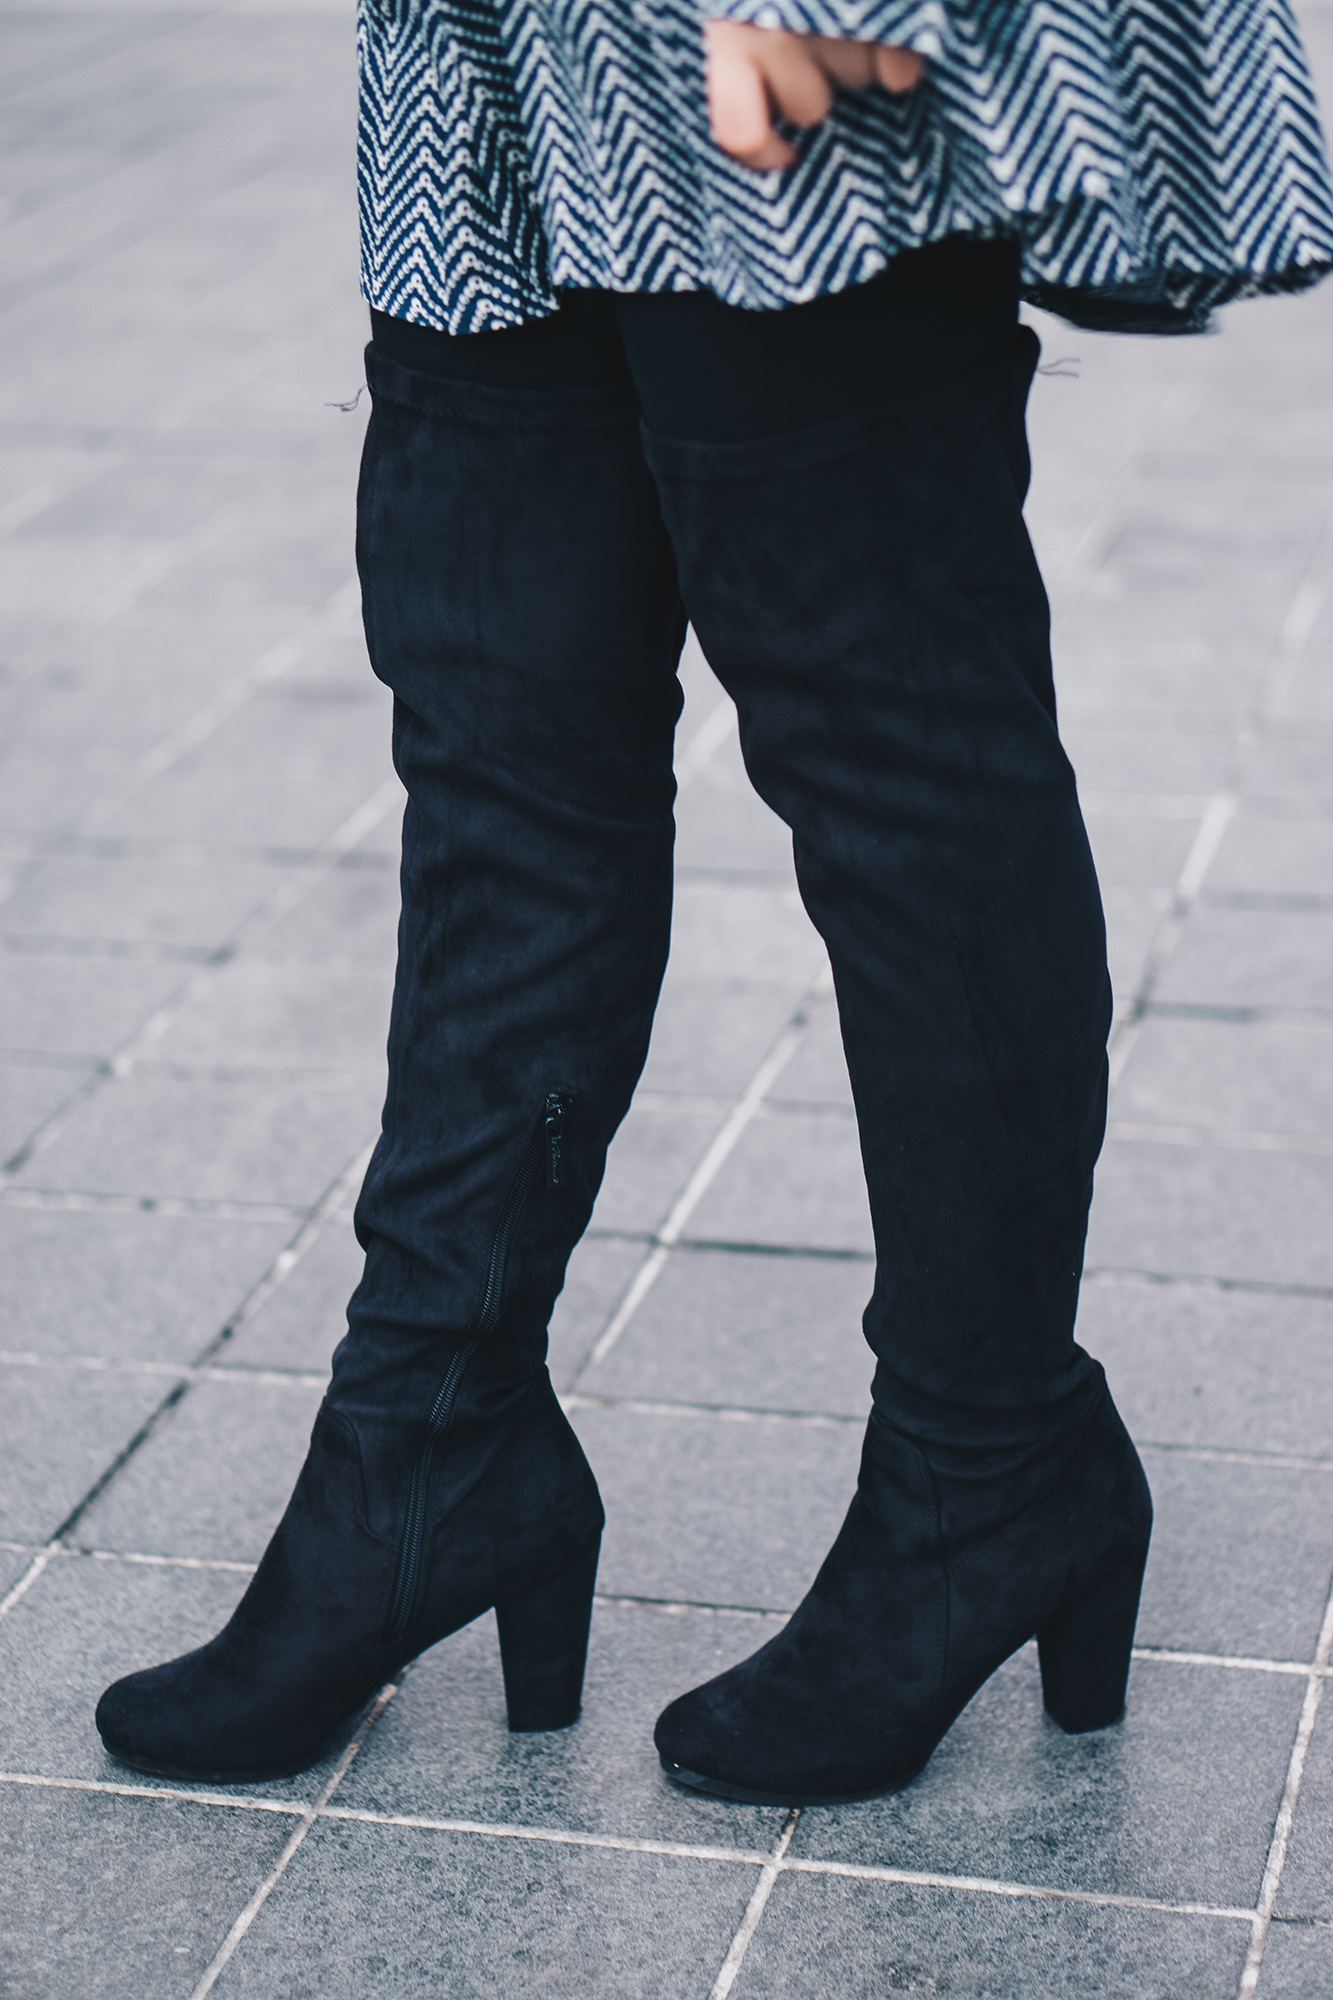 ami club wear over the knee boots